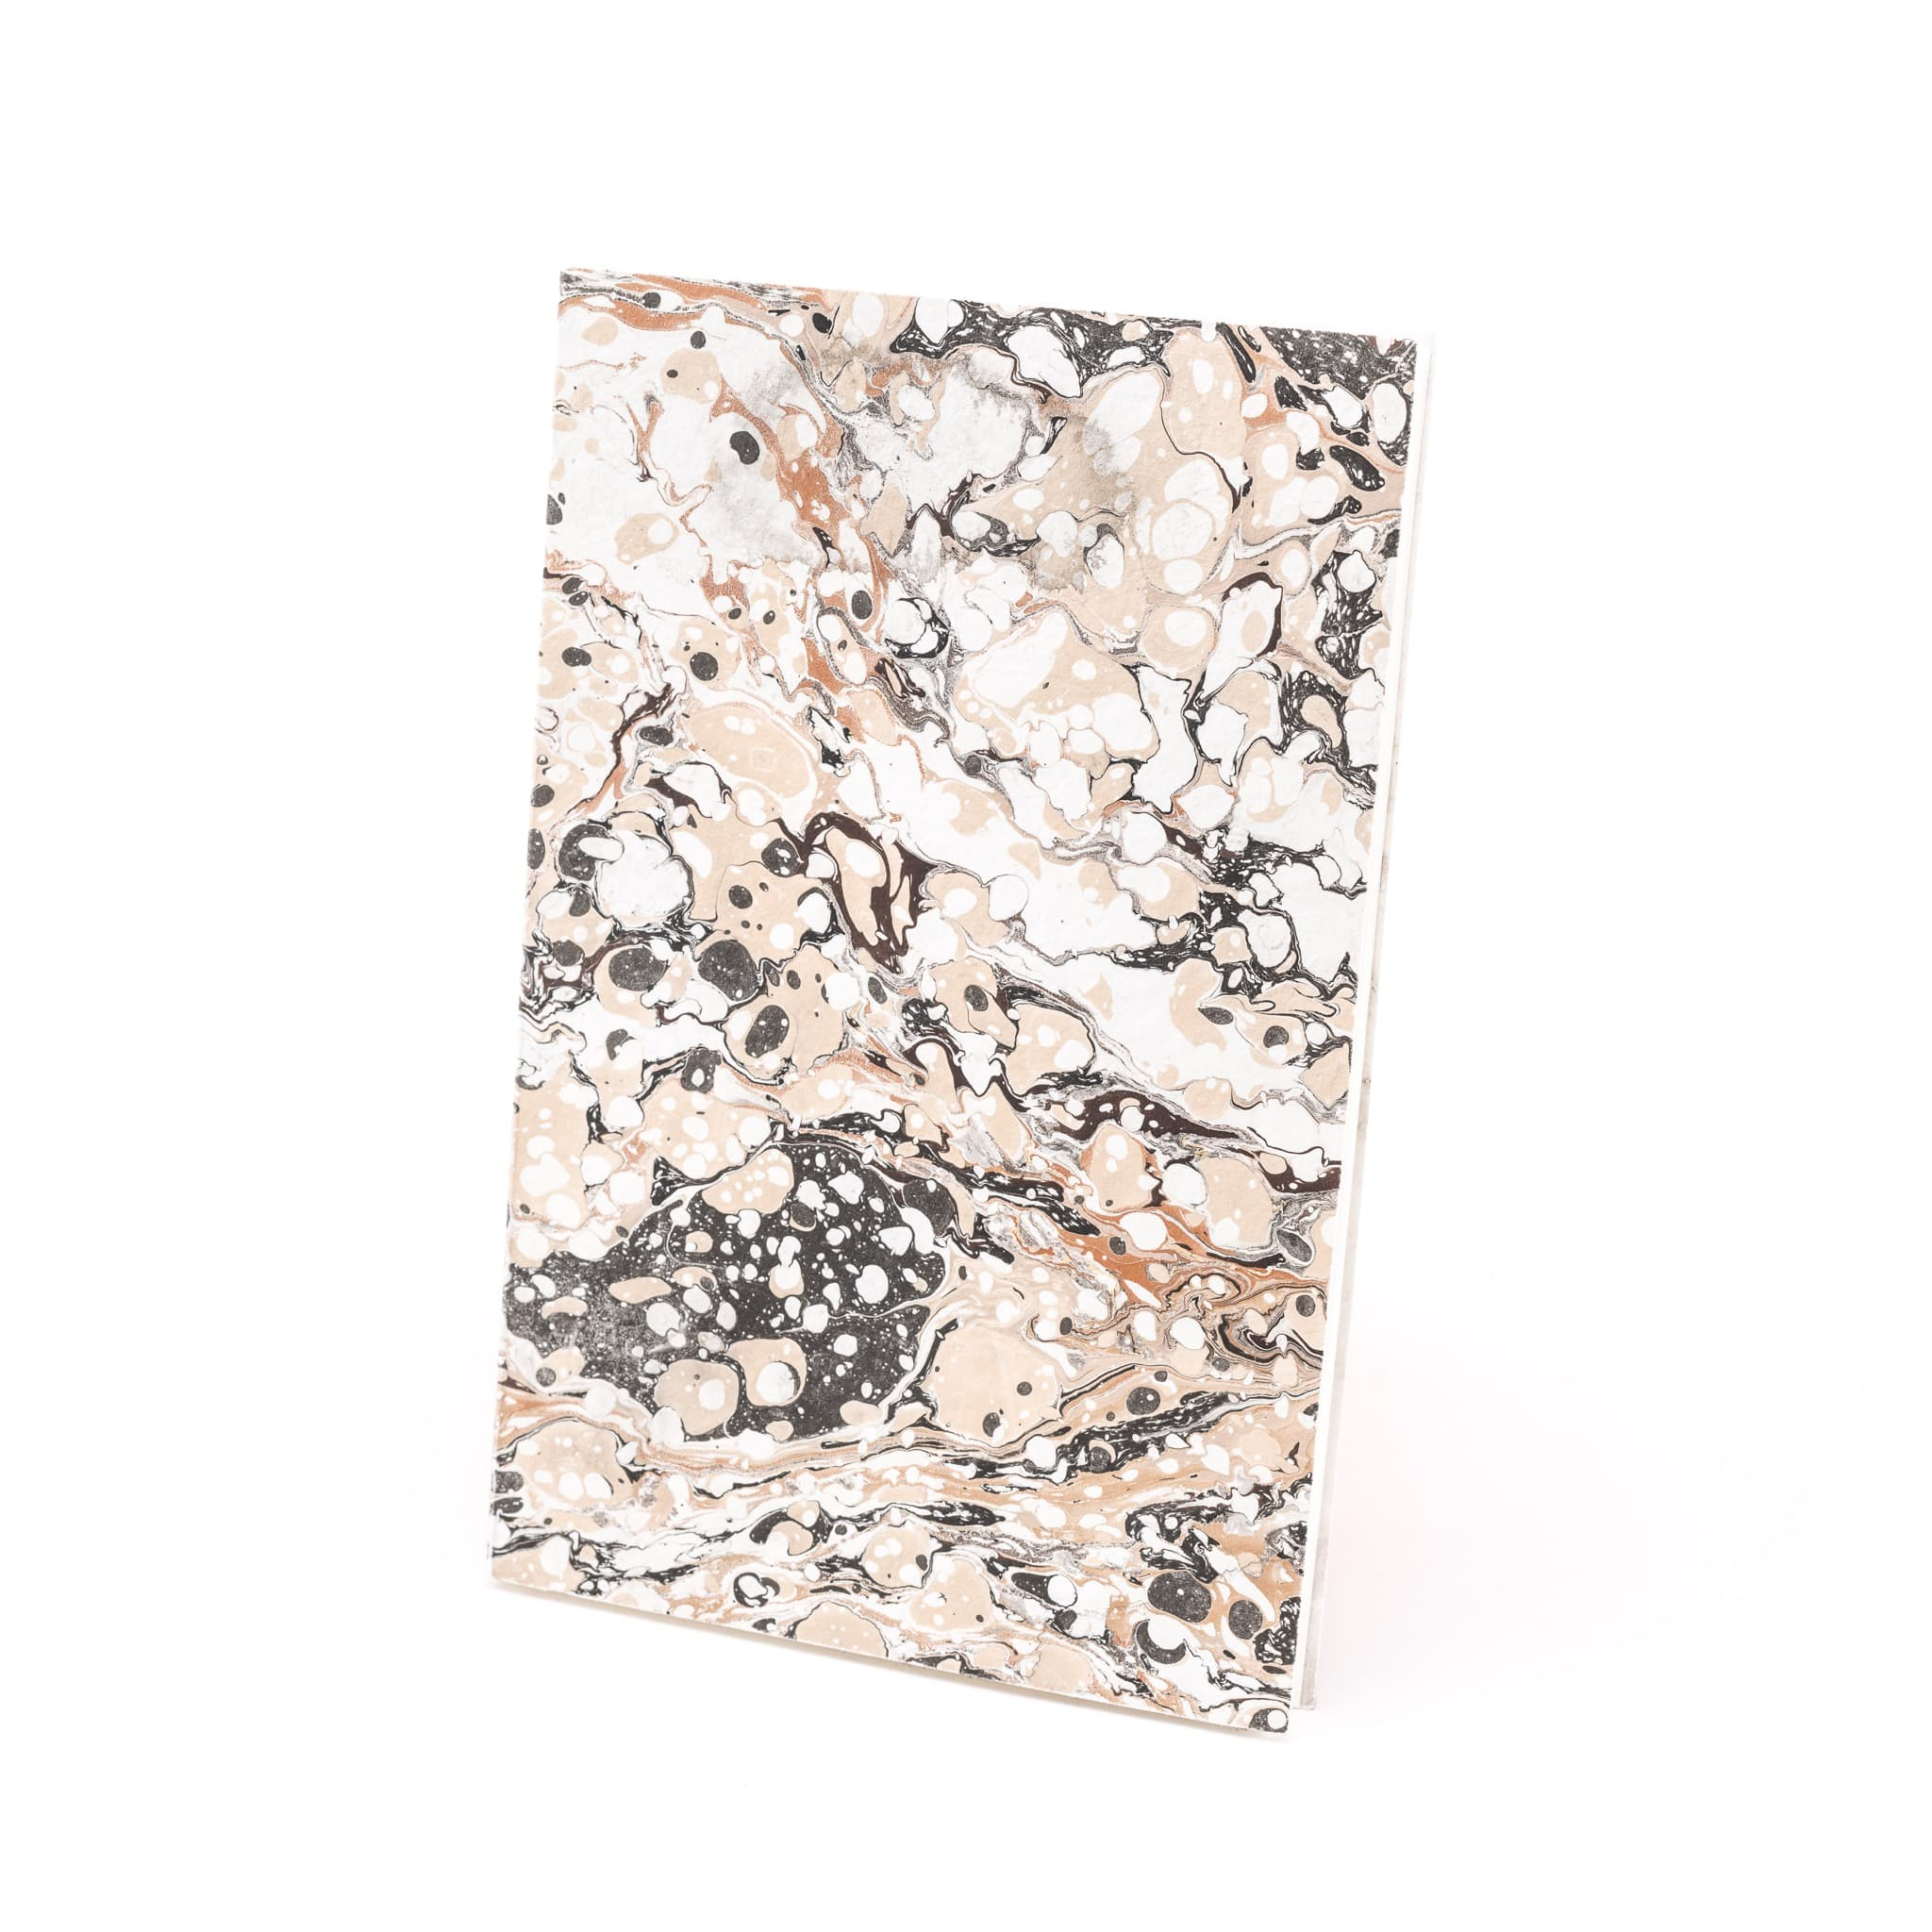 The Perfect Marbled Journal